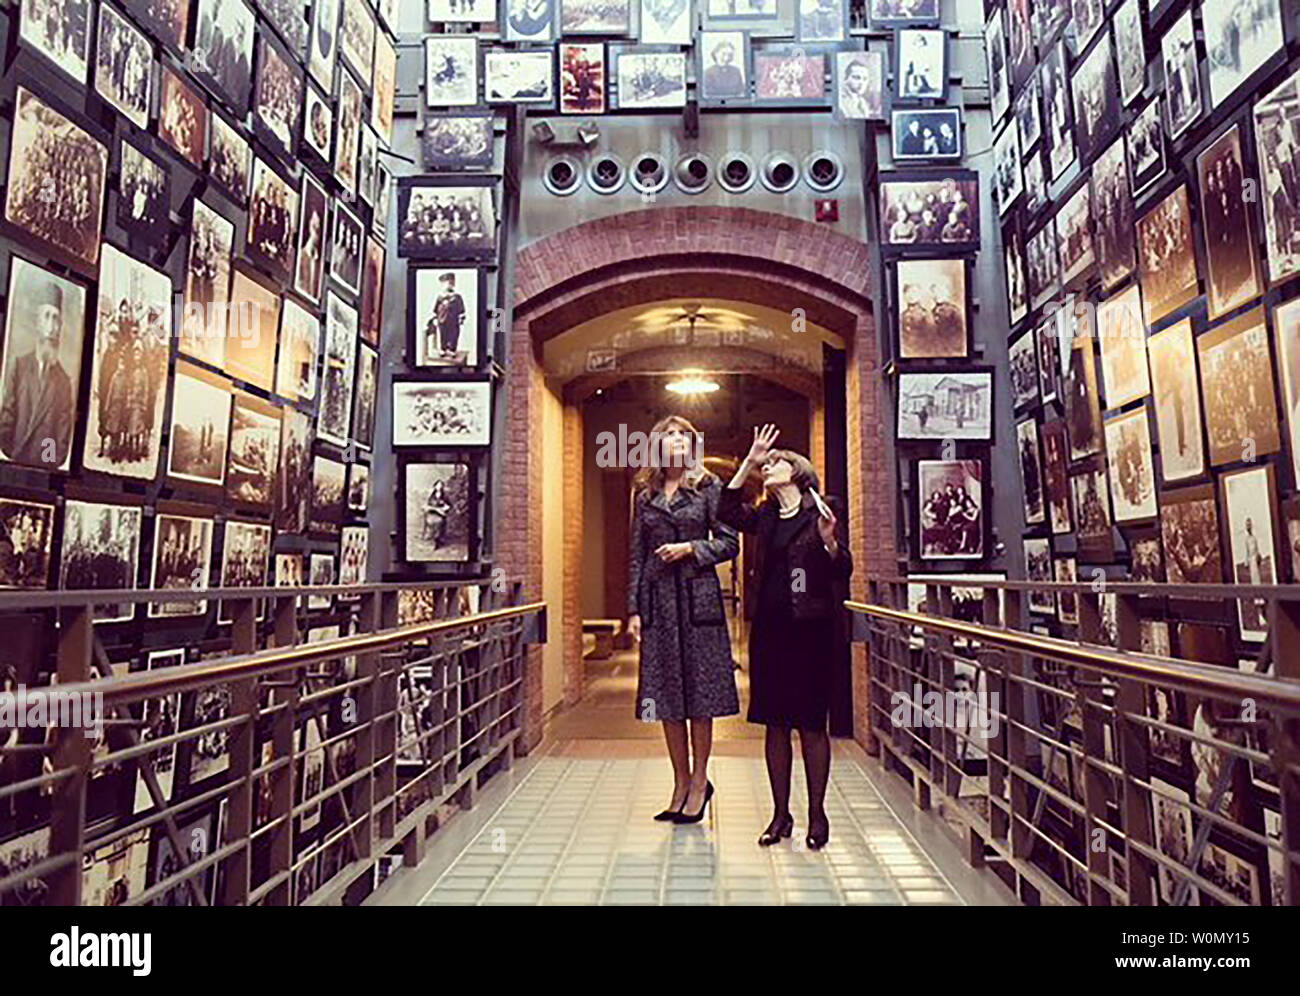 "First Lady Melania Trump is pictured visiting the Holocaust Museum in Washington, D.C., on January 25, 2018. Accompanying the photographs she posted on Twitter, the president's wife wrote, ""Thank you @HolocaustMuseum for a powerful & moving tour that honors the millions of innocent lives lost, and educates us on the tragedies and effects of the holocaust.  Photo via FLOTUS/Twitter Stock Photo"